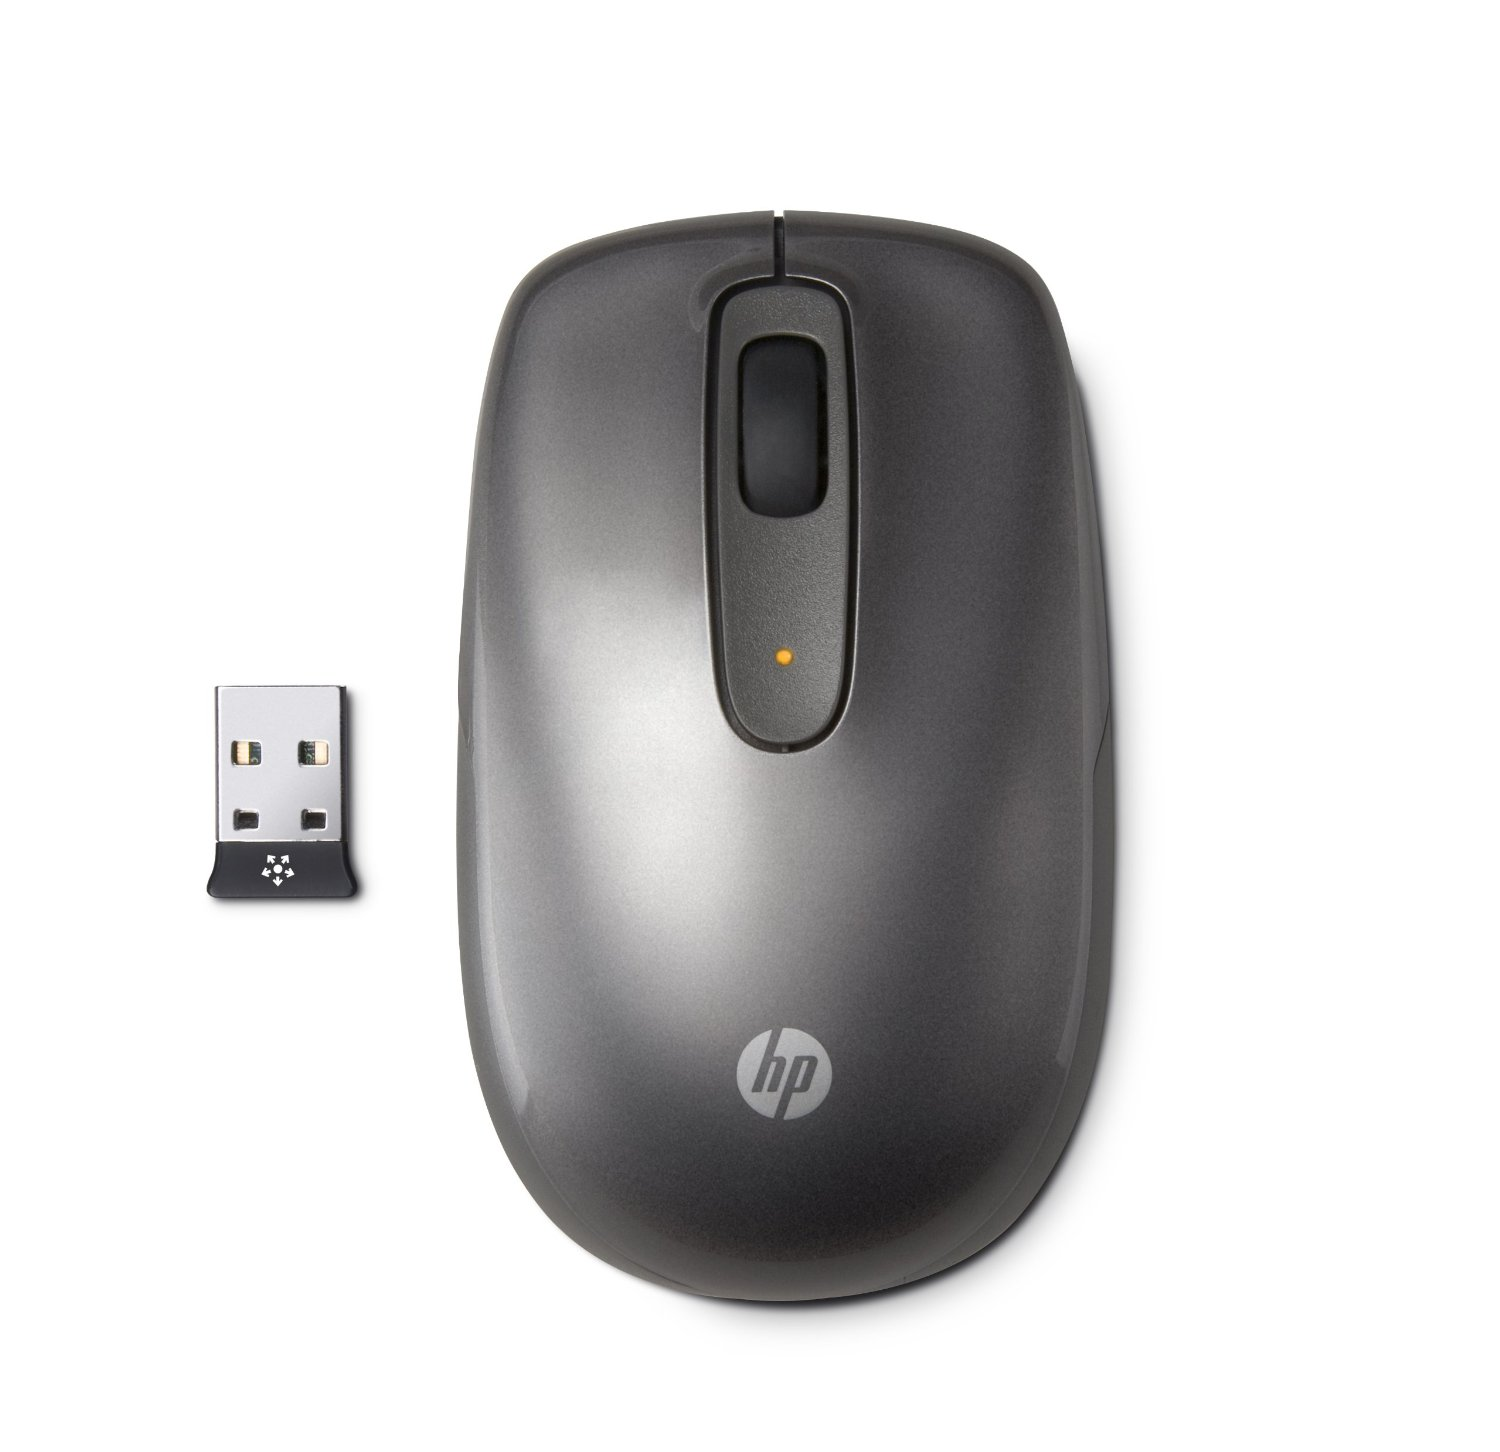 comfort mouse line find guides mobile optical red mhz get hp cheap at comforter wireless deals quotations on grip shopping